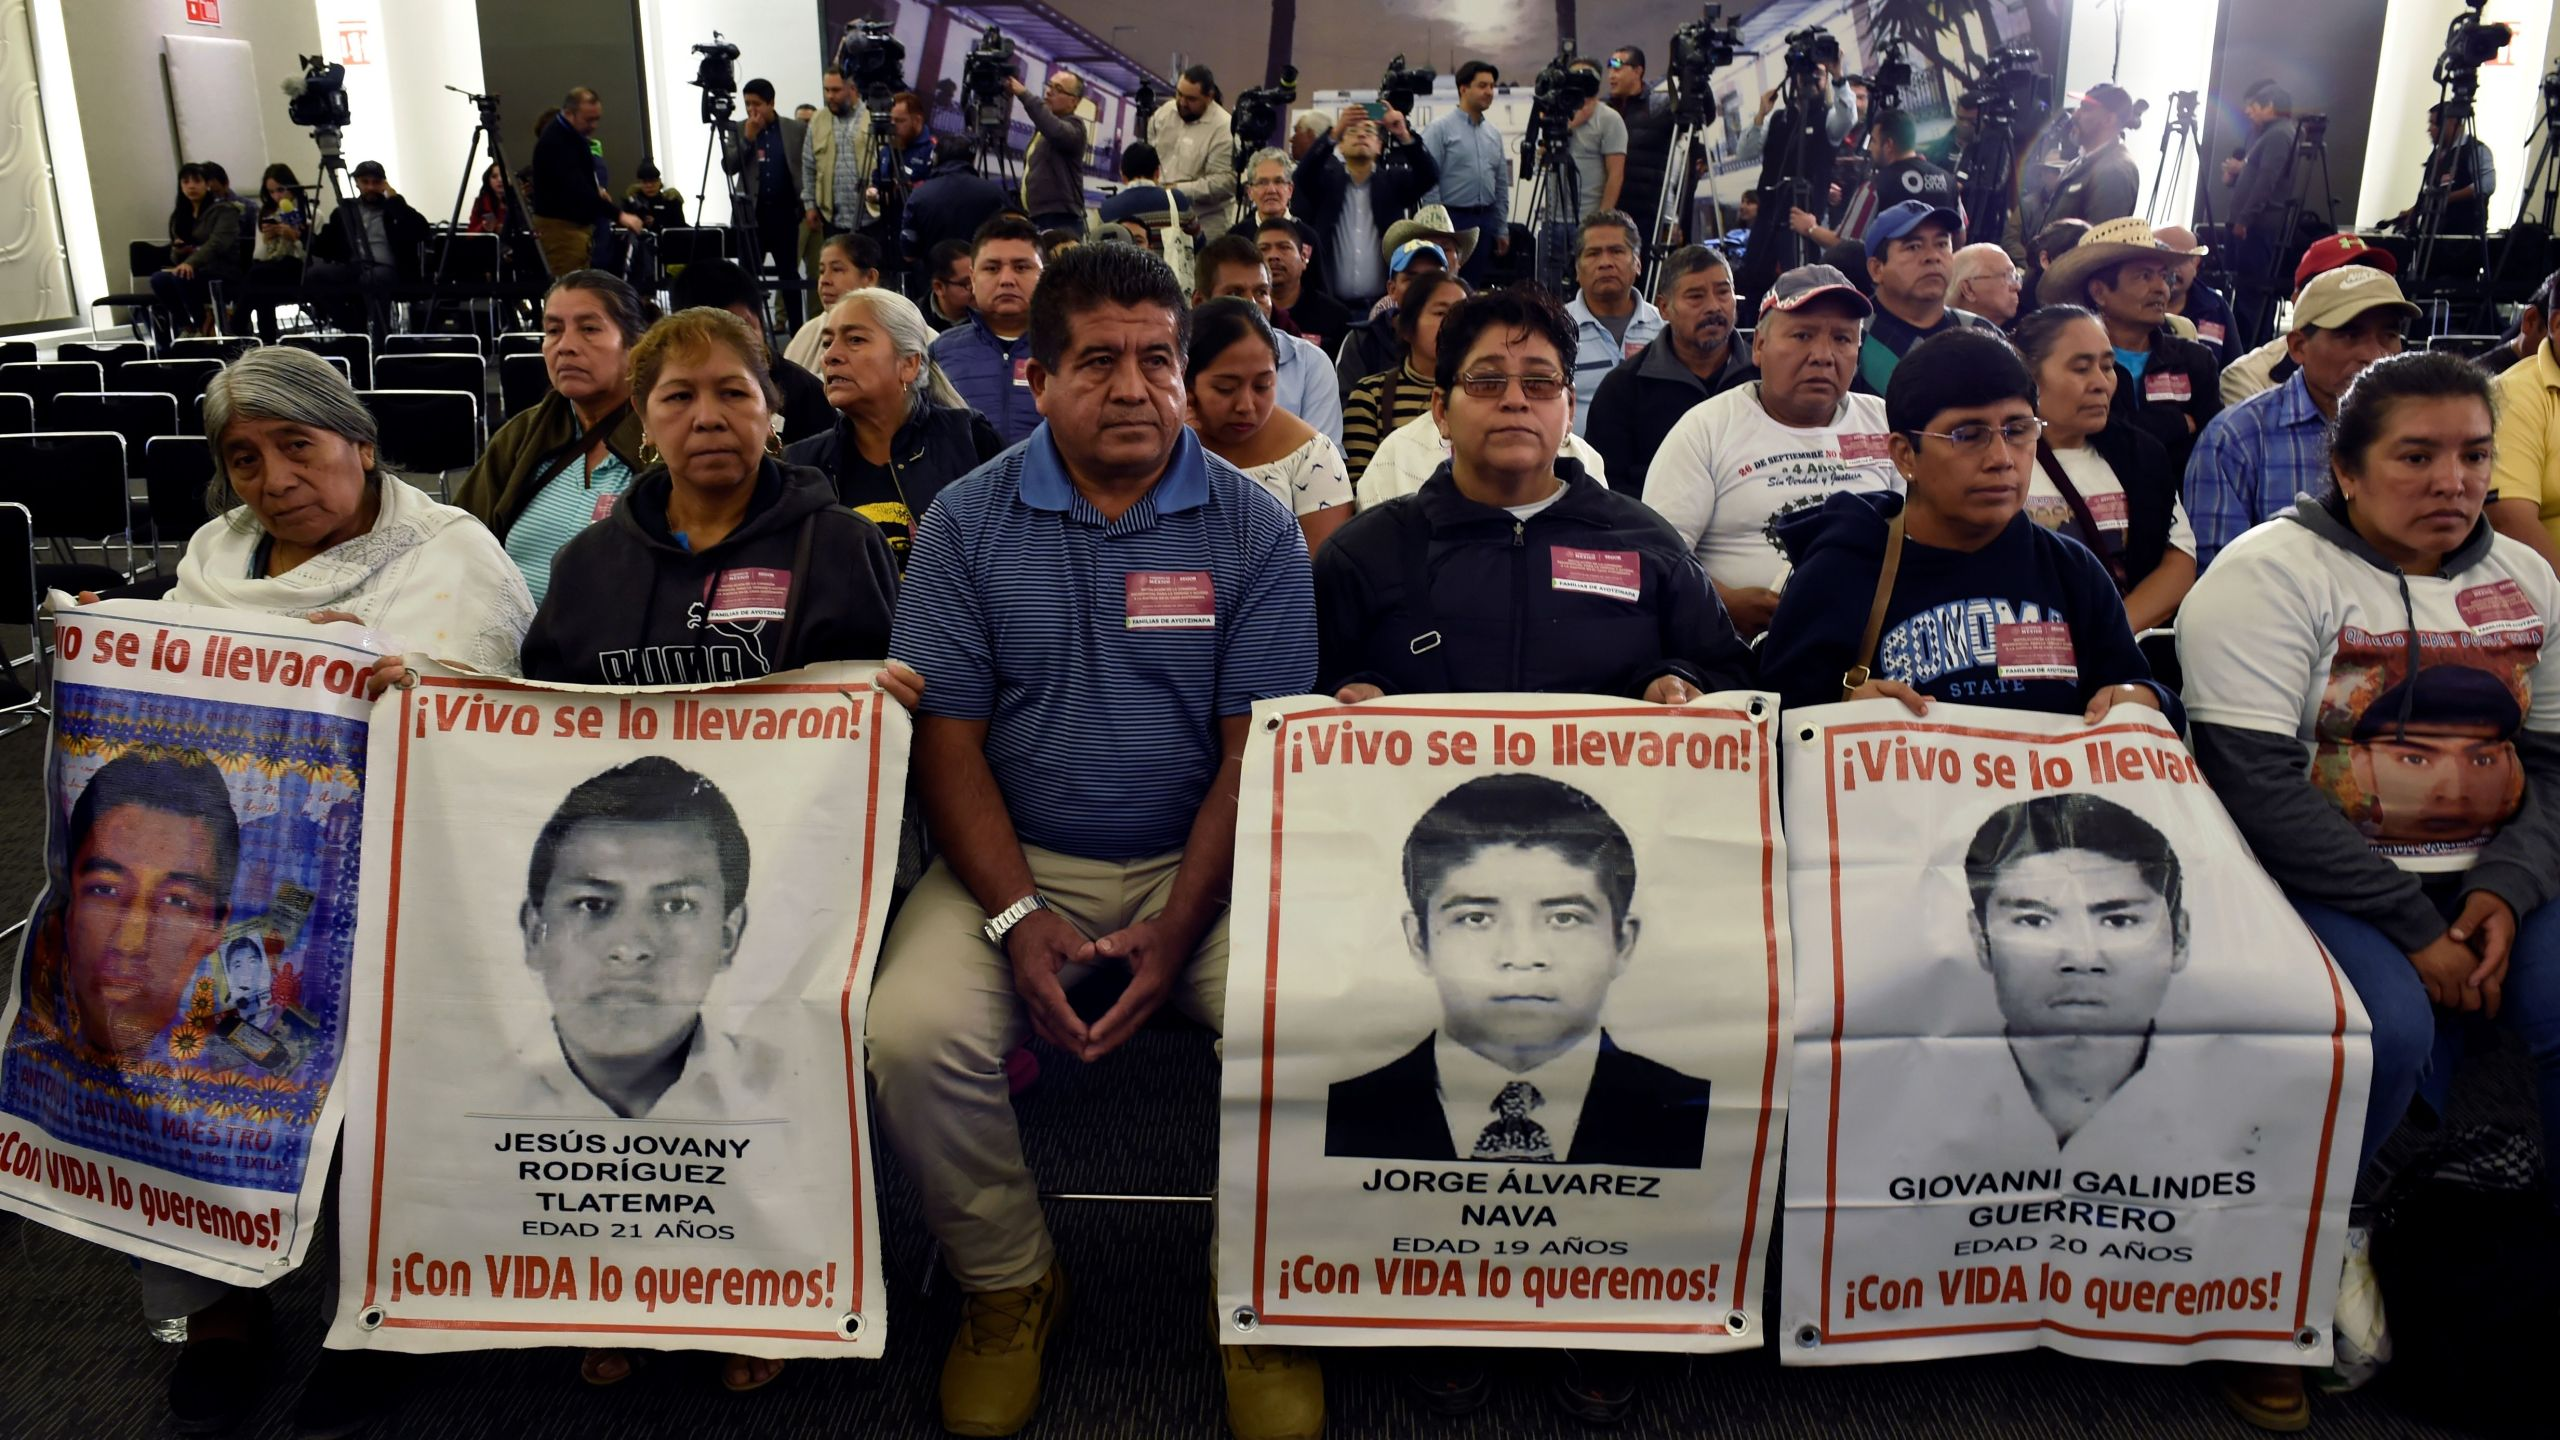 Relatives of some of the 43 students of the teaching training school in Ayotzinapa who went missing in 2014, attend the installation of a truth commission on the Ayotzinapa case at the Interior Ministry in Mexico City on January 15, 2019. (Credit: ALFREDO ESTRELLA/AFP/Getty Images)